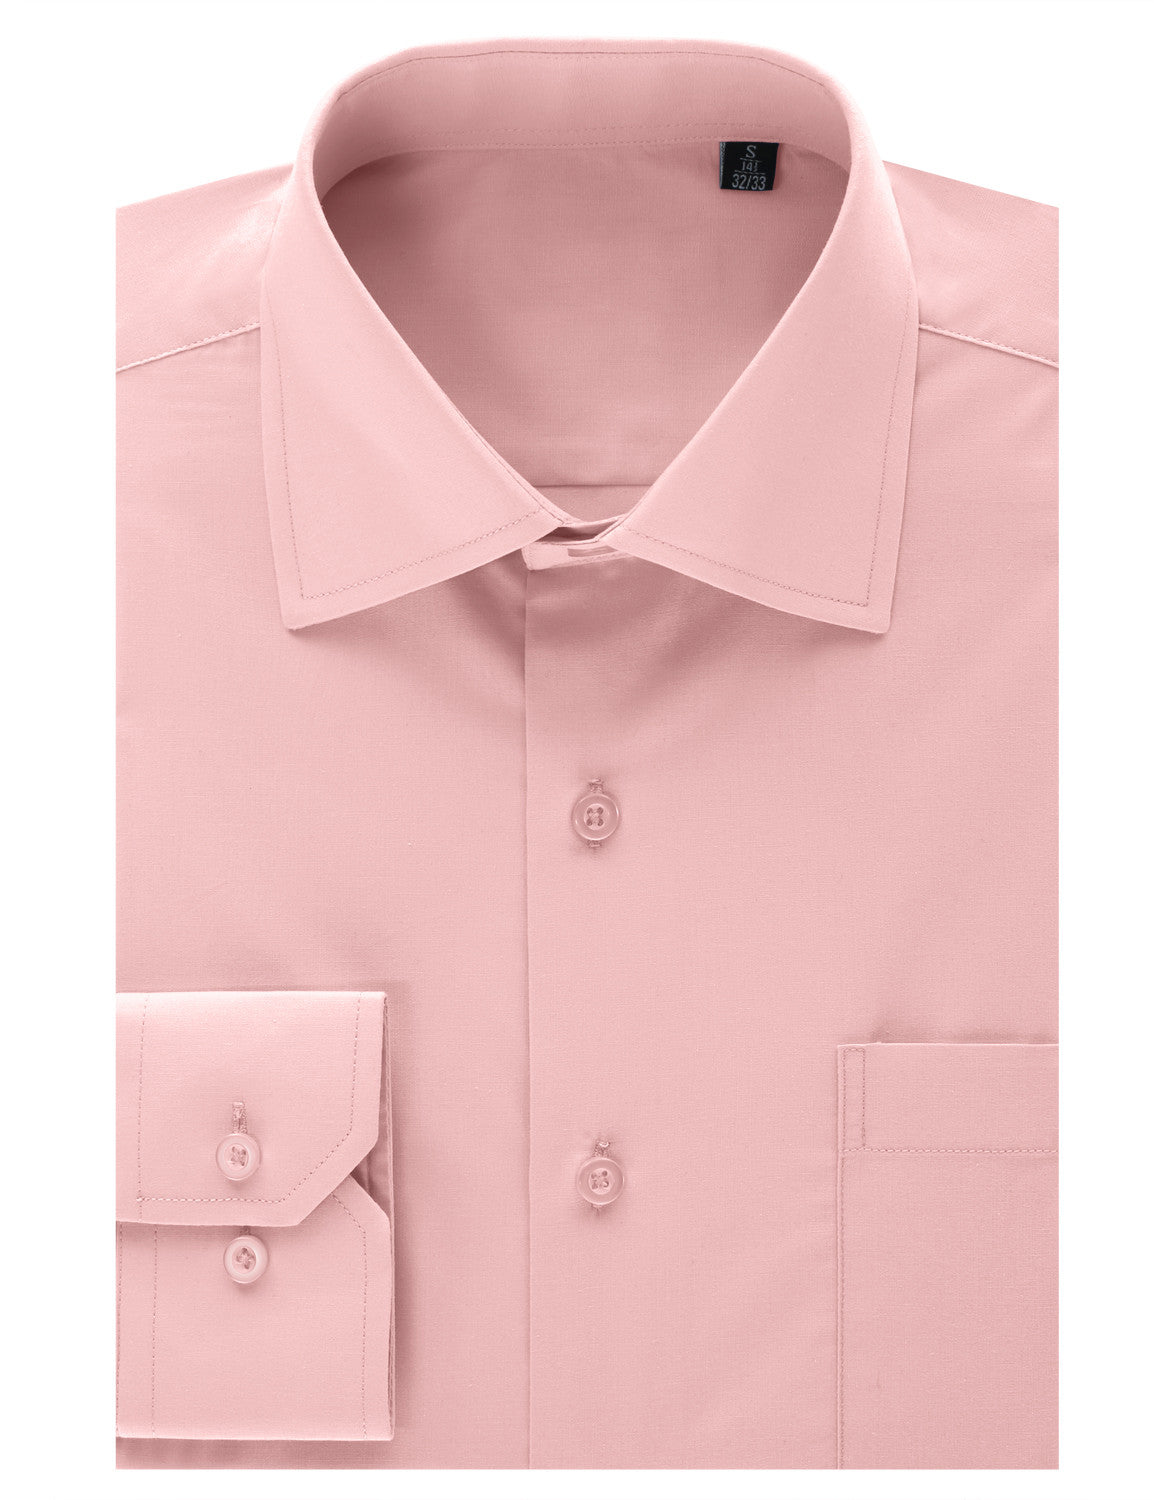 TC625PINK Pink Regular Fit Dress Shirt w/ Reversible Cuff (Big & Tall Available)- MONDAYSUIT